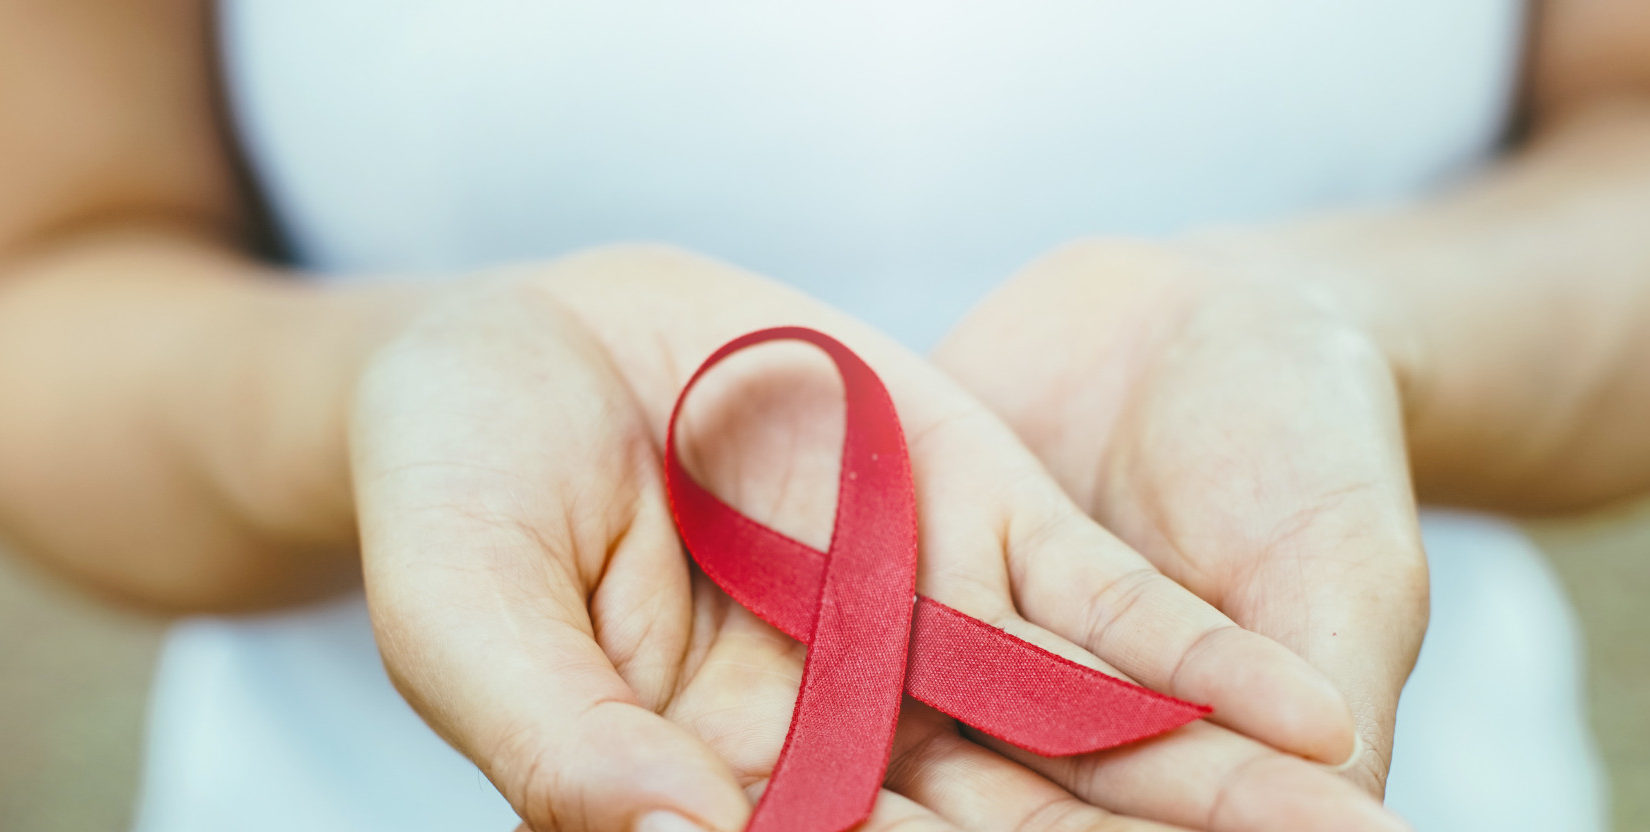 Cure for HIV AIDS Second Patient Cured of HIV Opens up the Possibilities to End the Epidemic